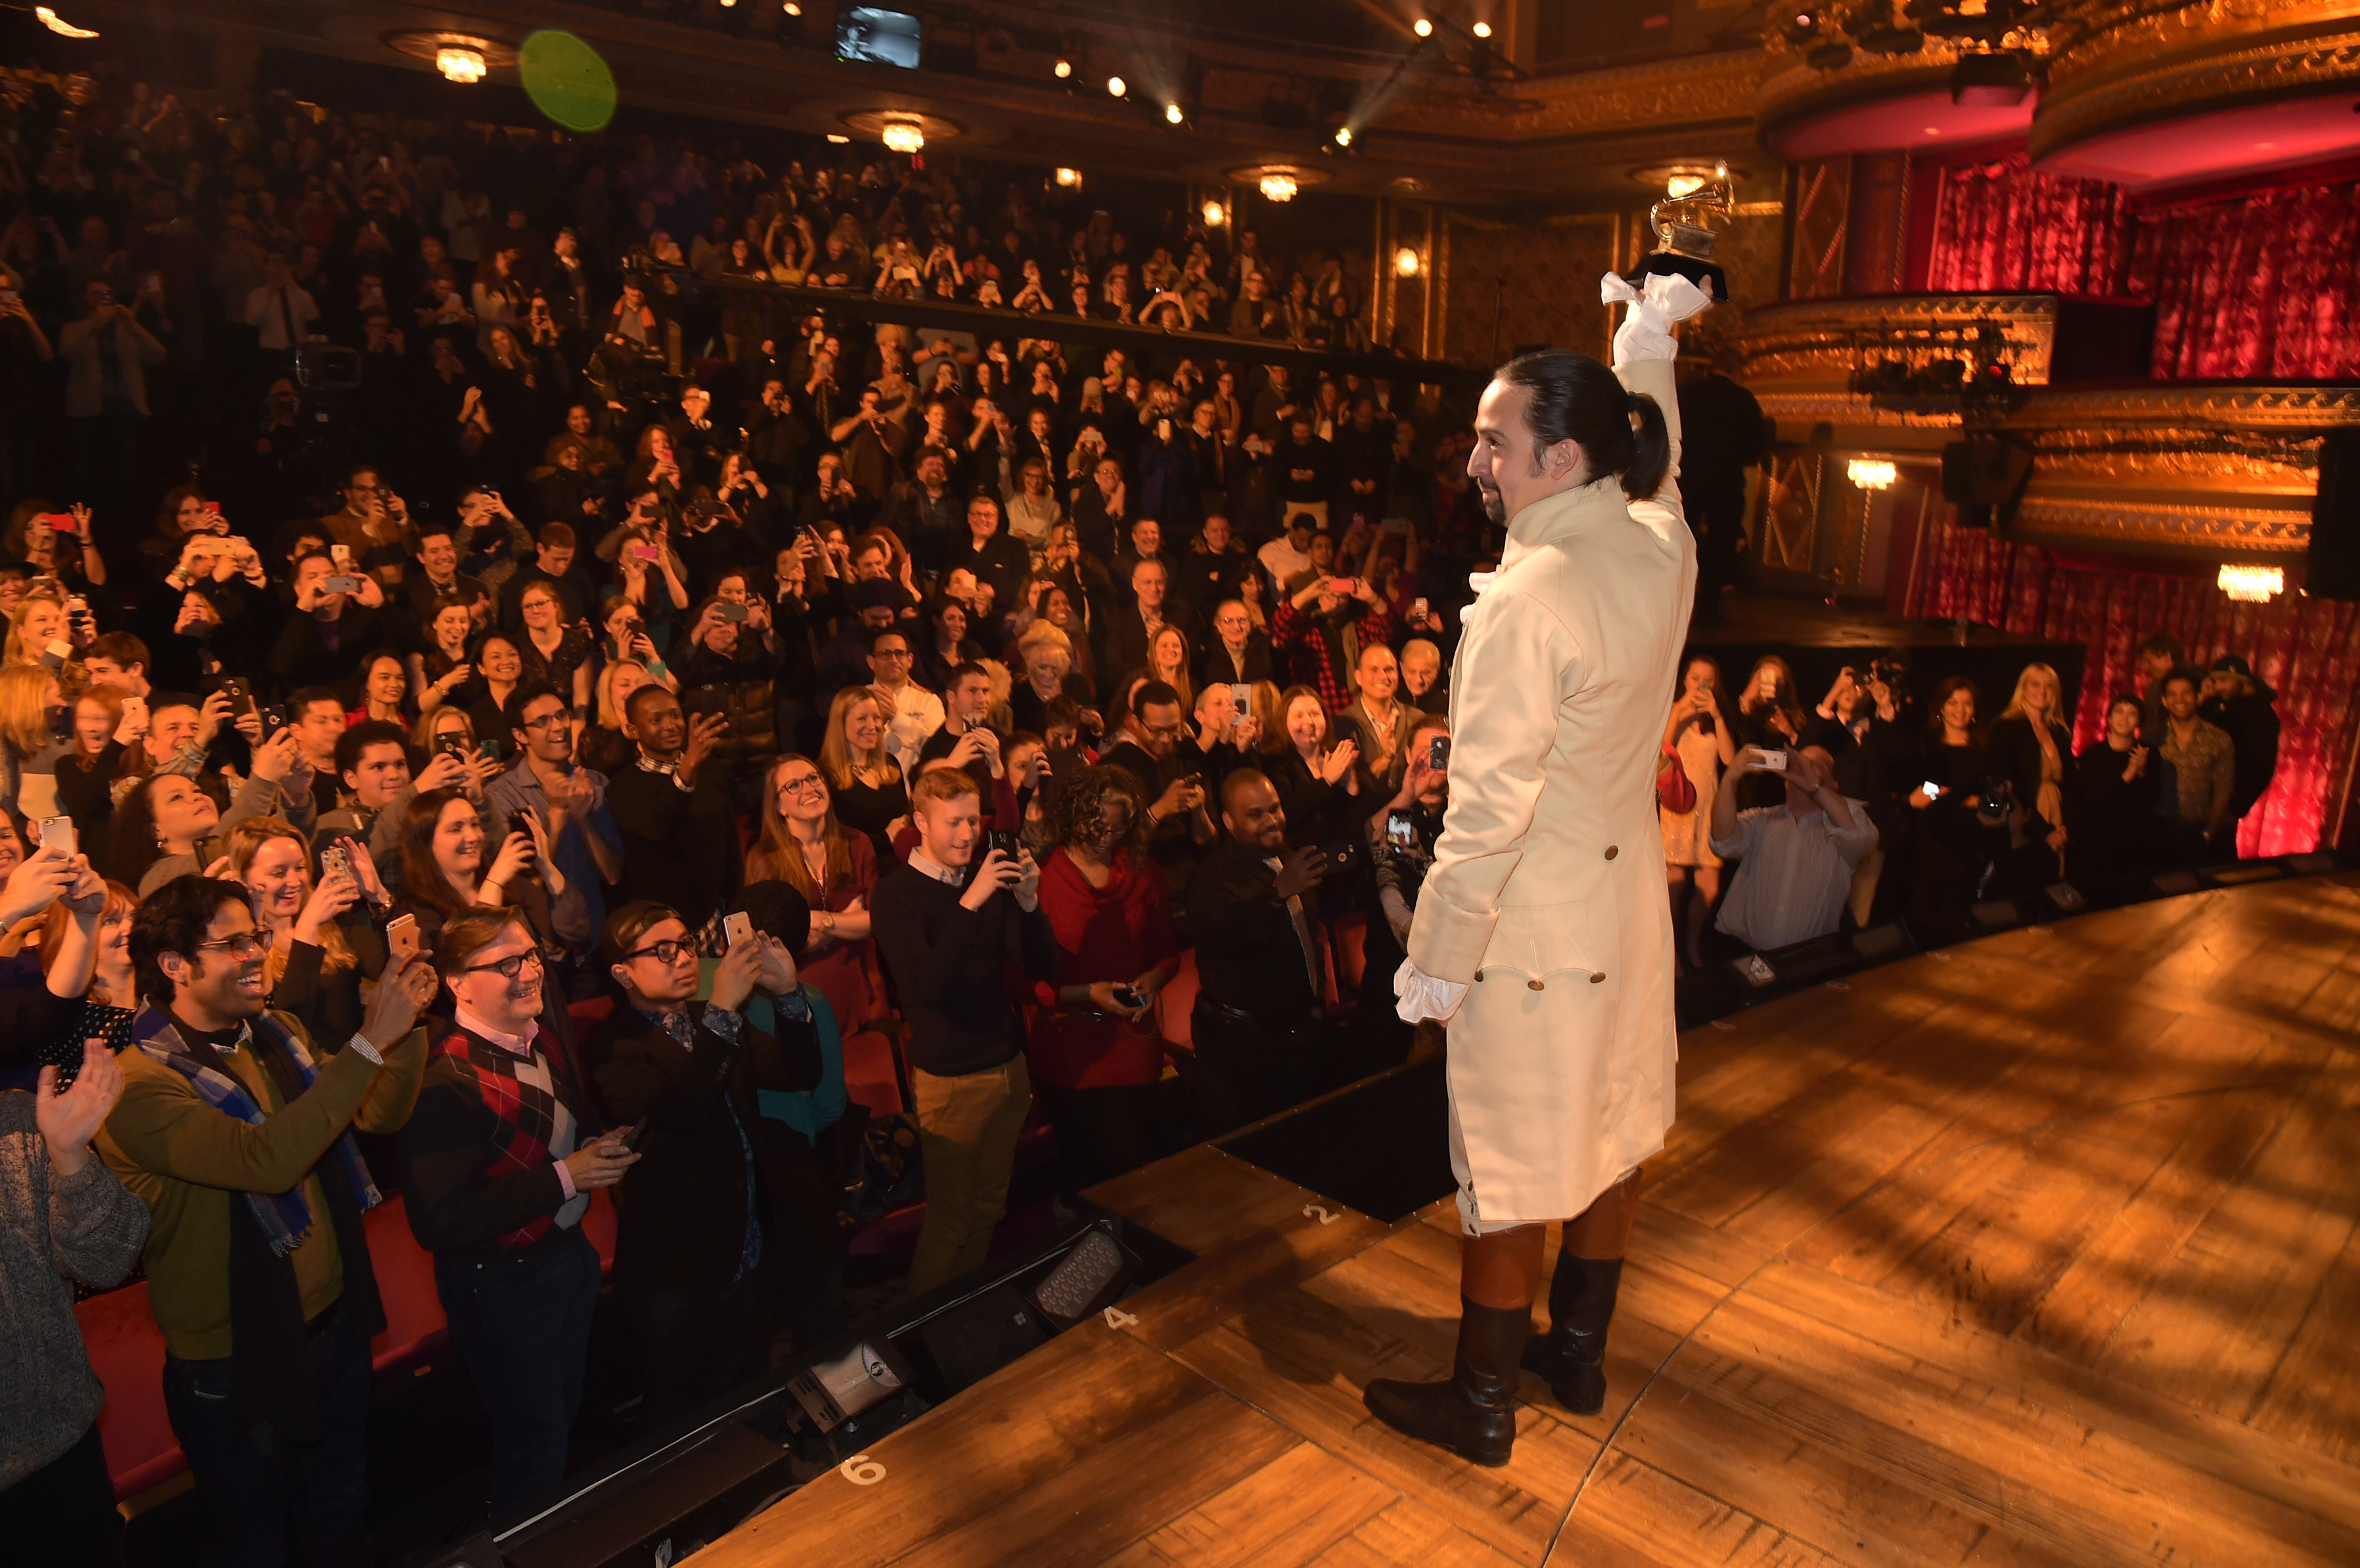 Composer, actor Lin-Manuel Miranda celebrates receiving GRAMMY award during  Hamilton  GRAMMY performance at Richard Rodgers Theater on February 15, 2016 in New York City.